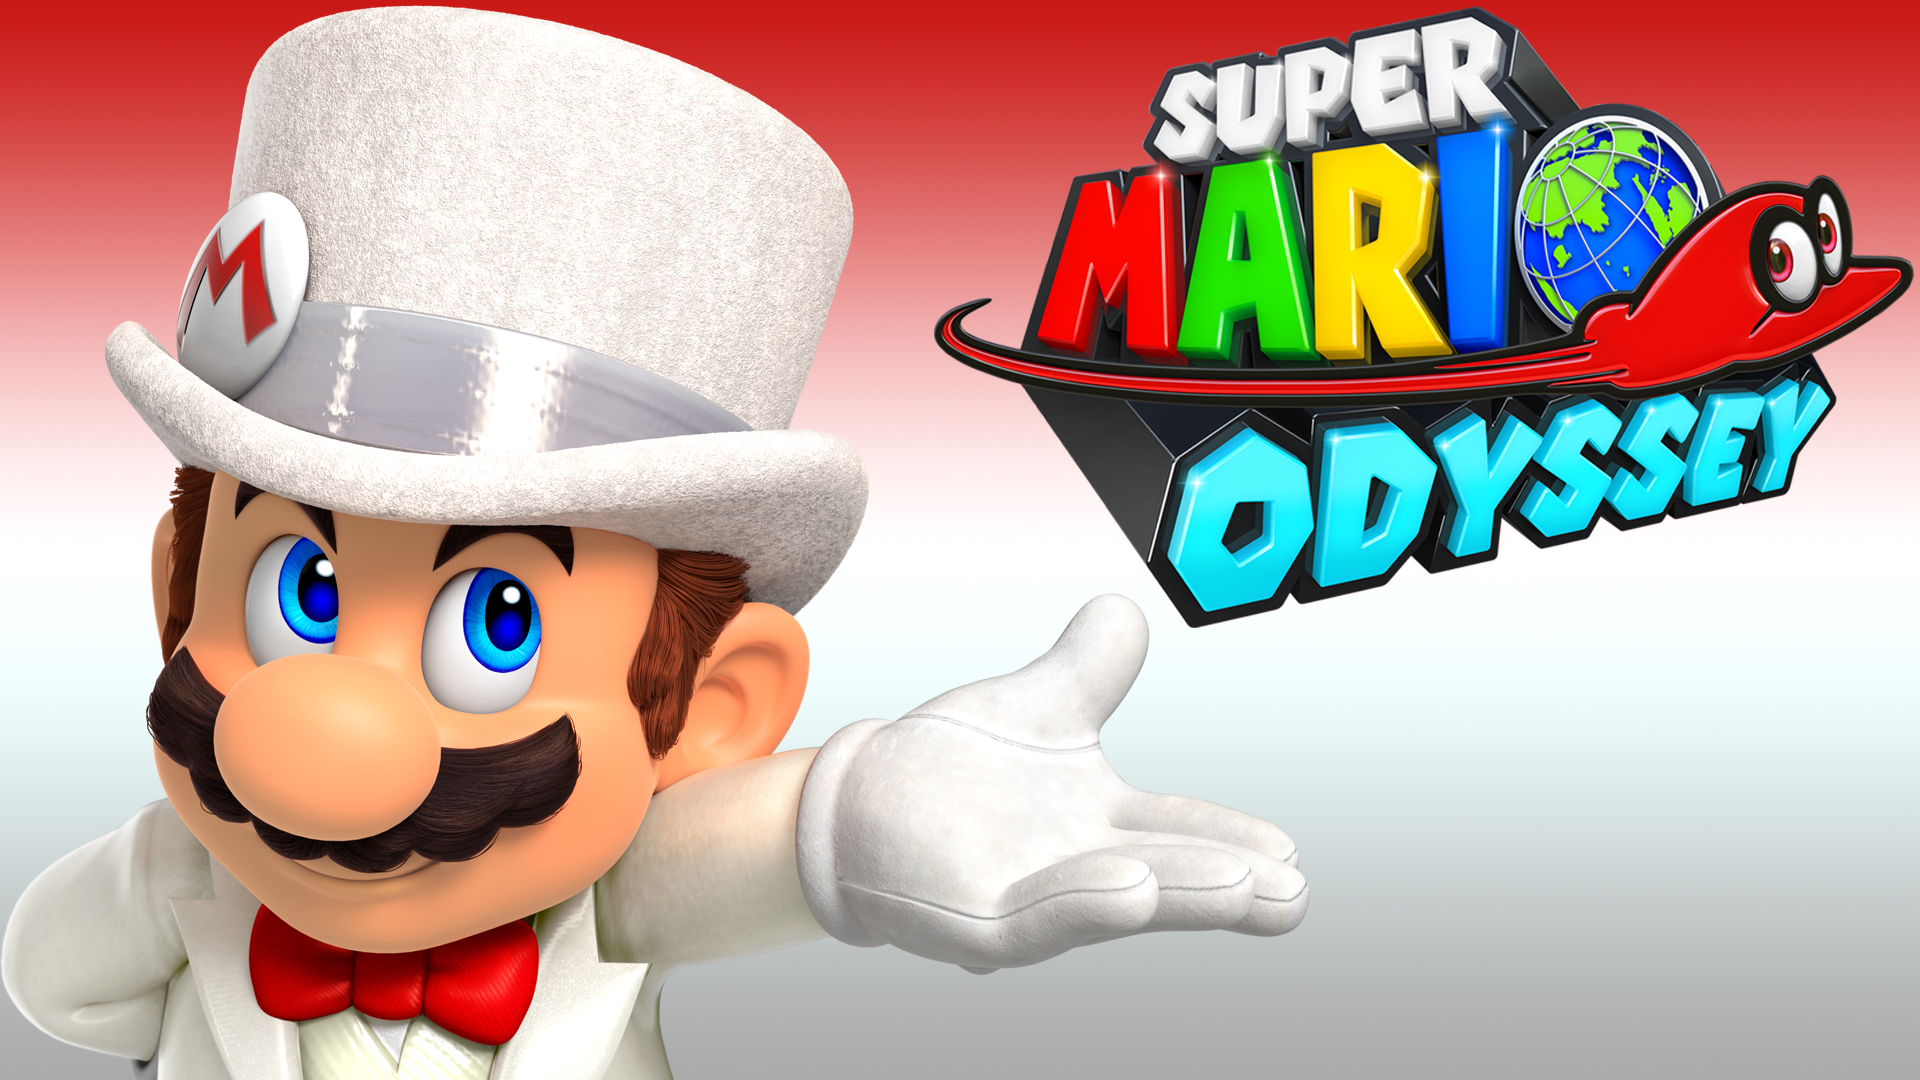 Super Mario Odyssey Hd Wallpaper Background Image 1920x1080